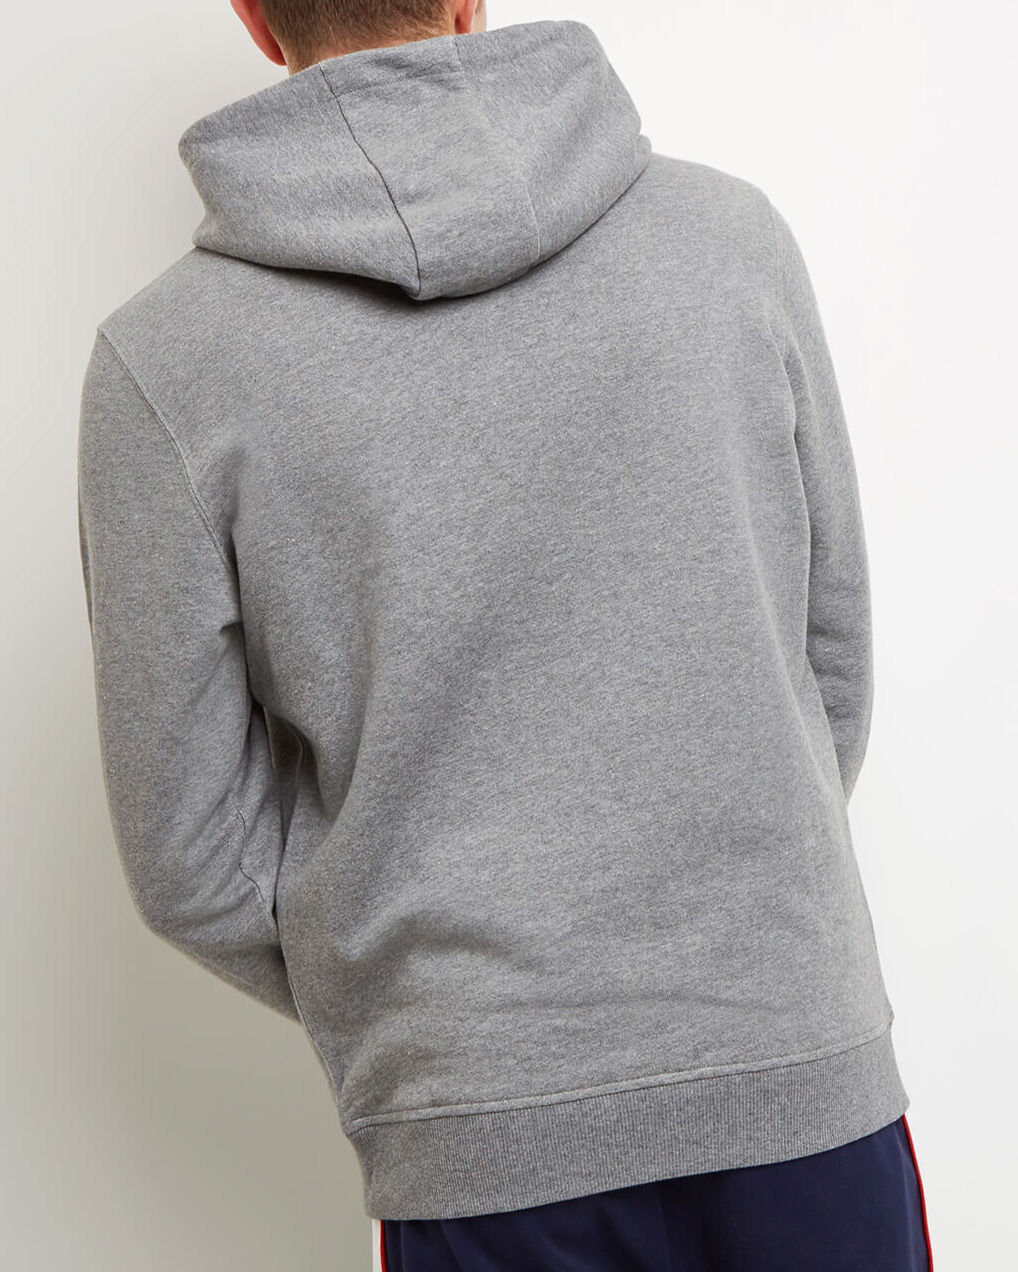 Lyle-and-Scott-Mens-Pullover-Hoodie-Cotton thumbnail 31